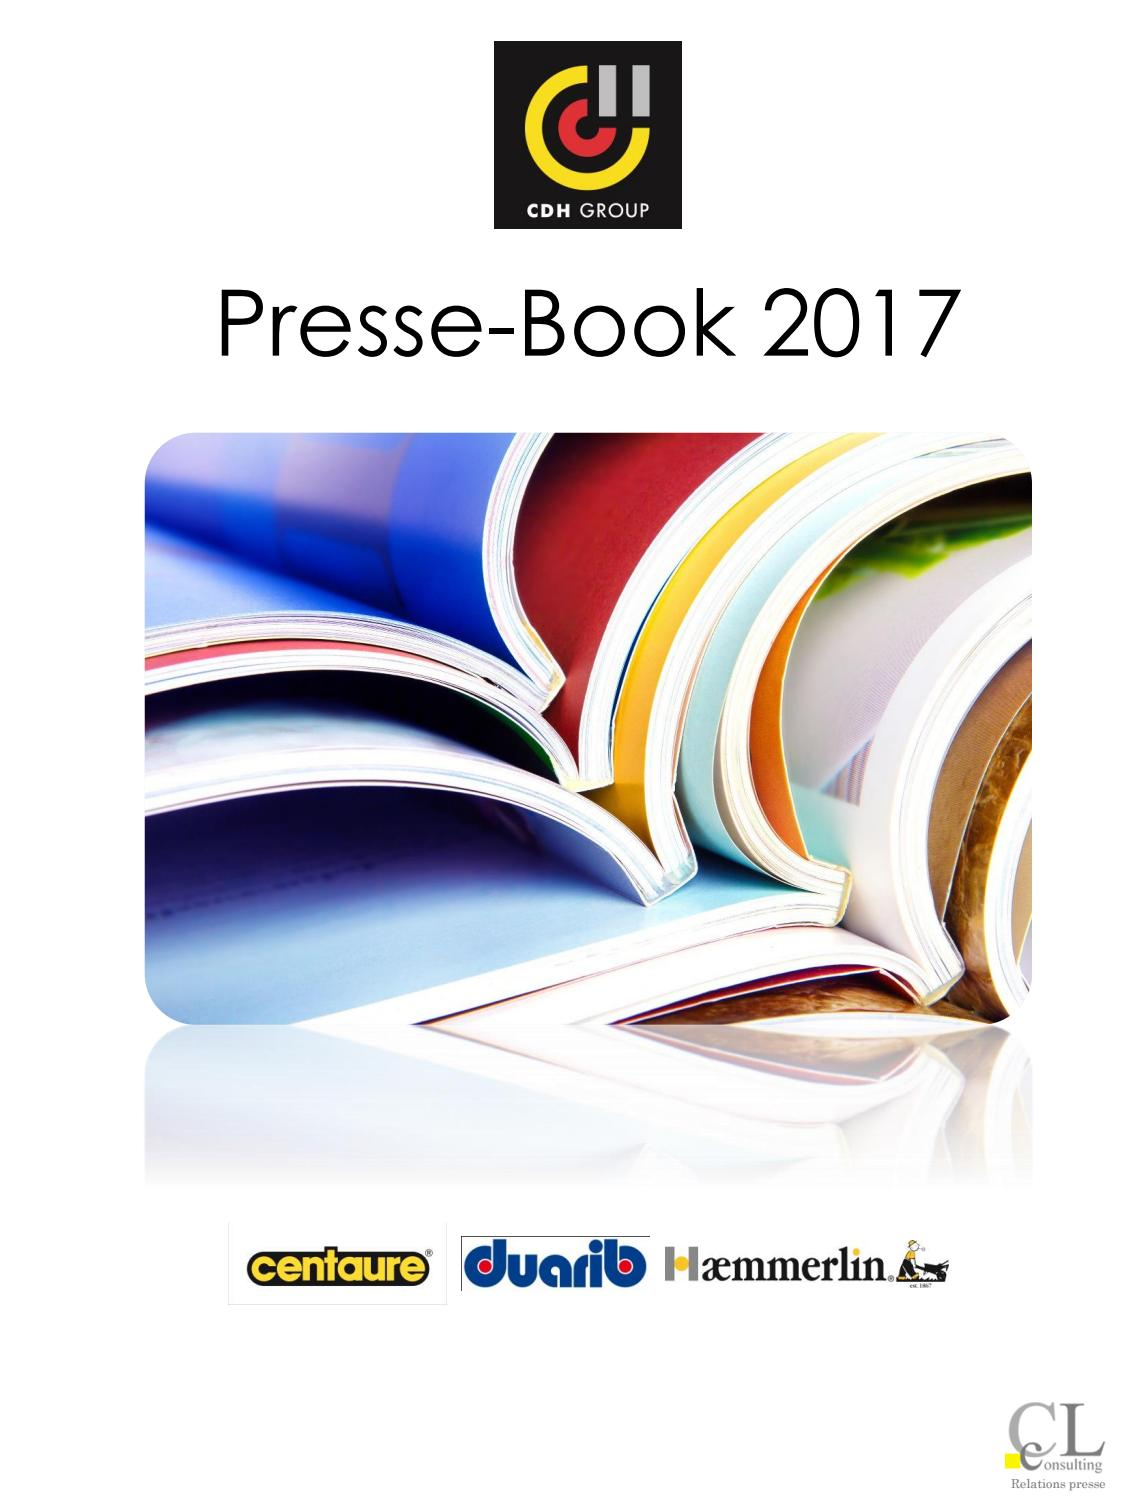 Presse Book Cdh Group 2017 Par Marques By Fdubas@cdhgroup ... concernant Promotion Piscine Desjoyaux 2017